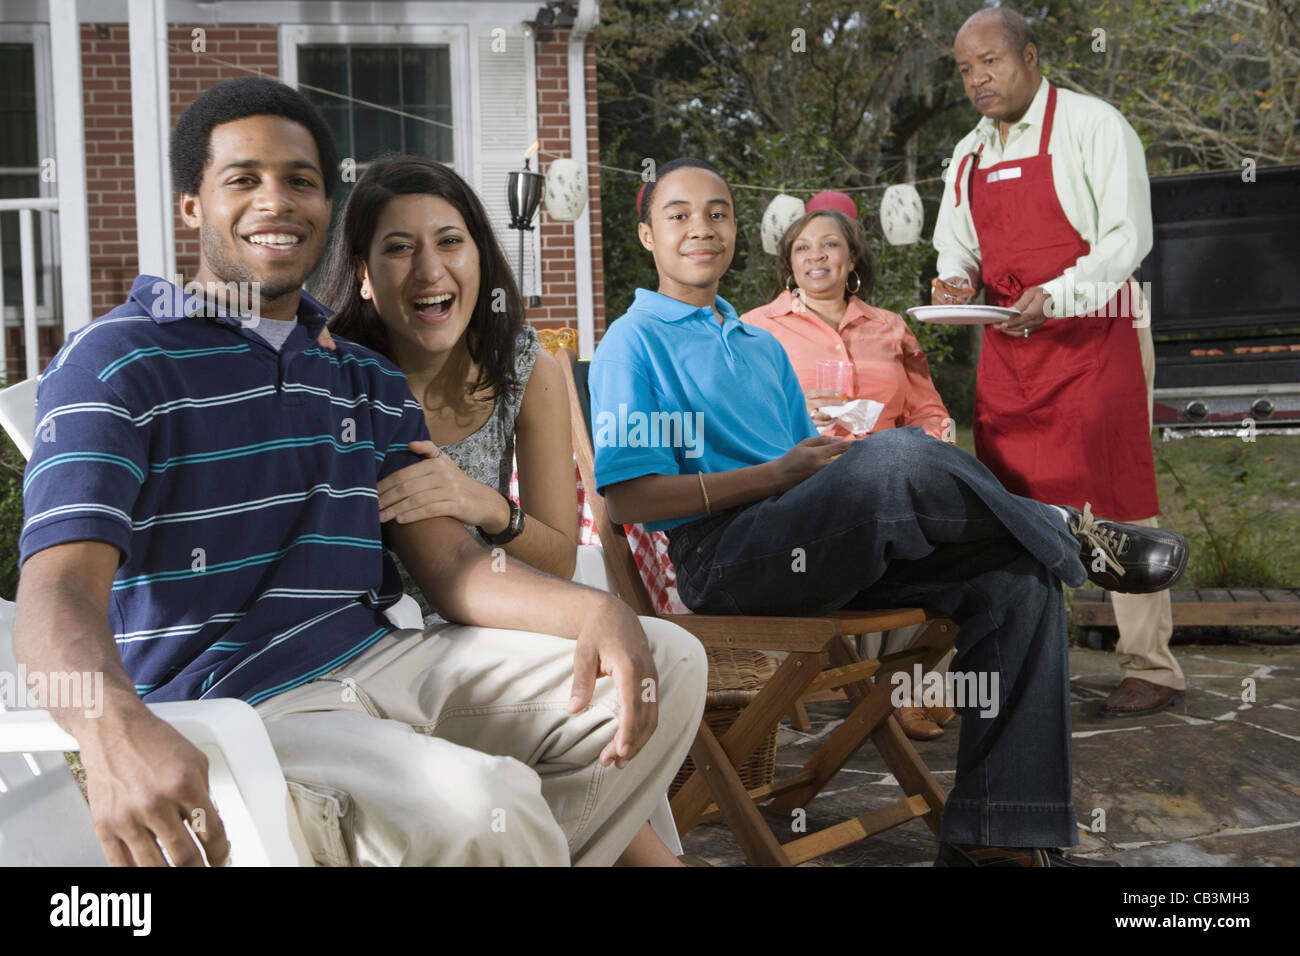 couple and family enjoying backyard barbeque stock